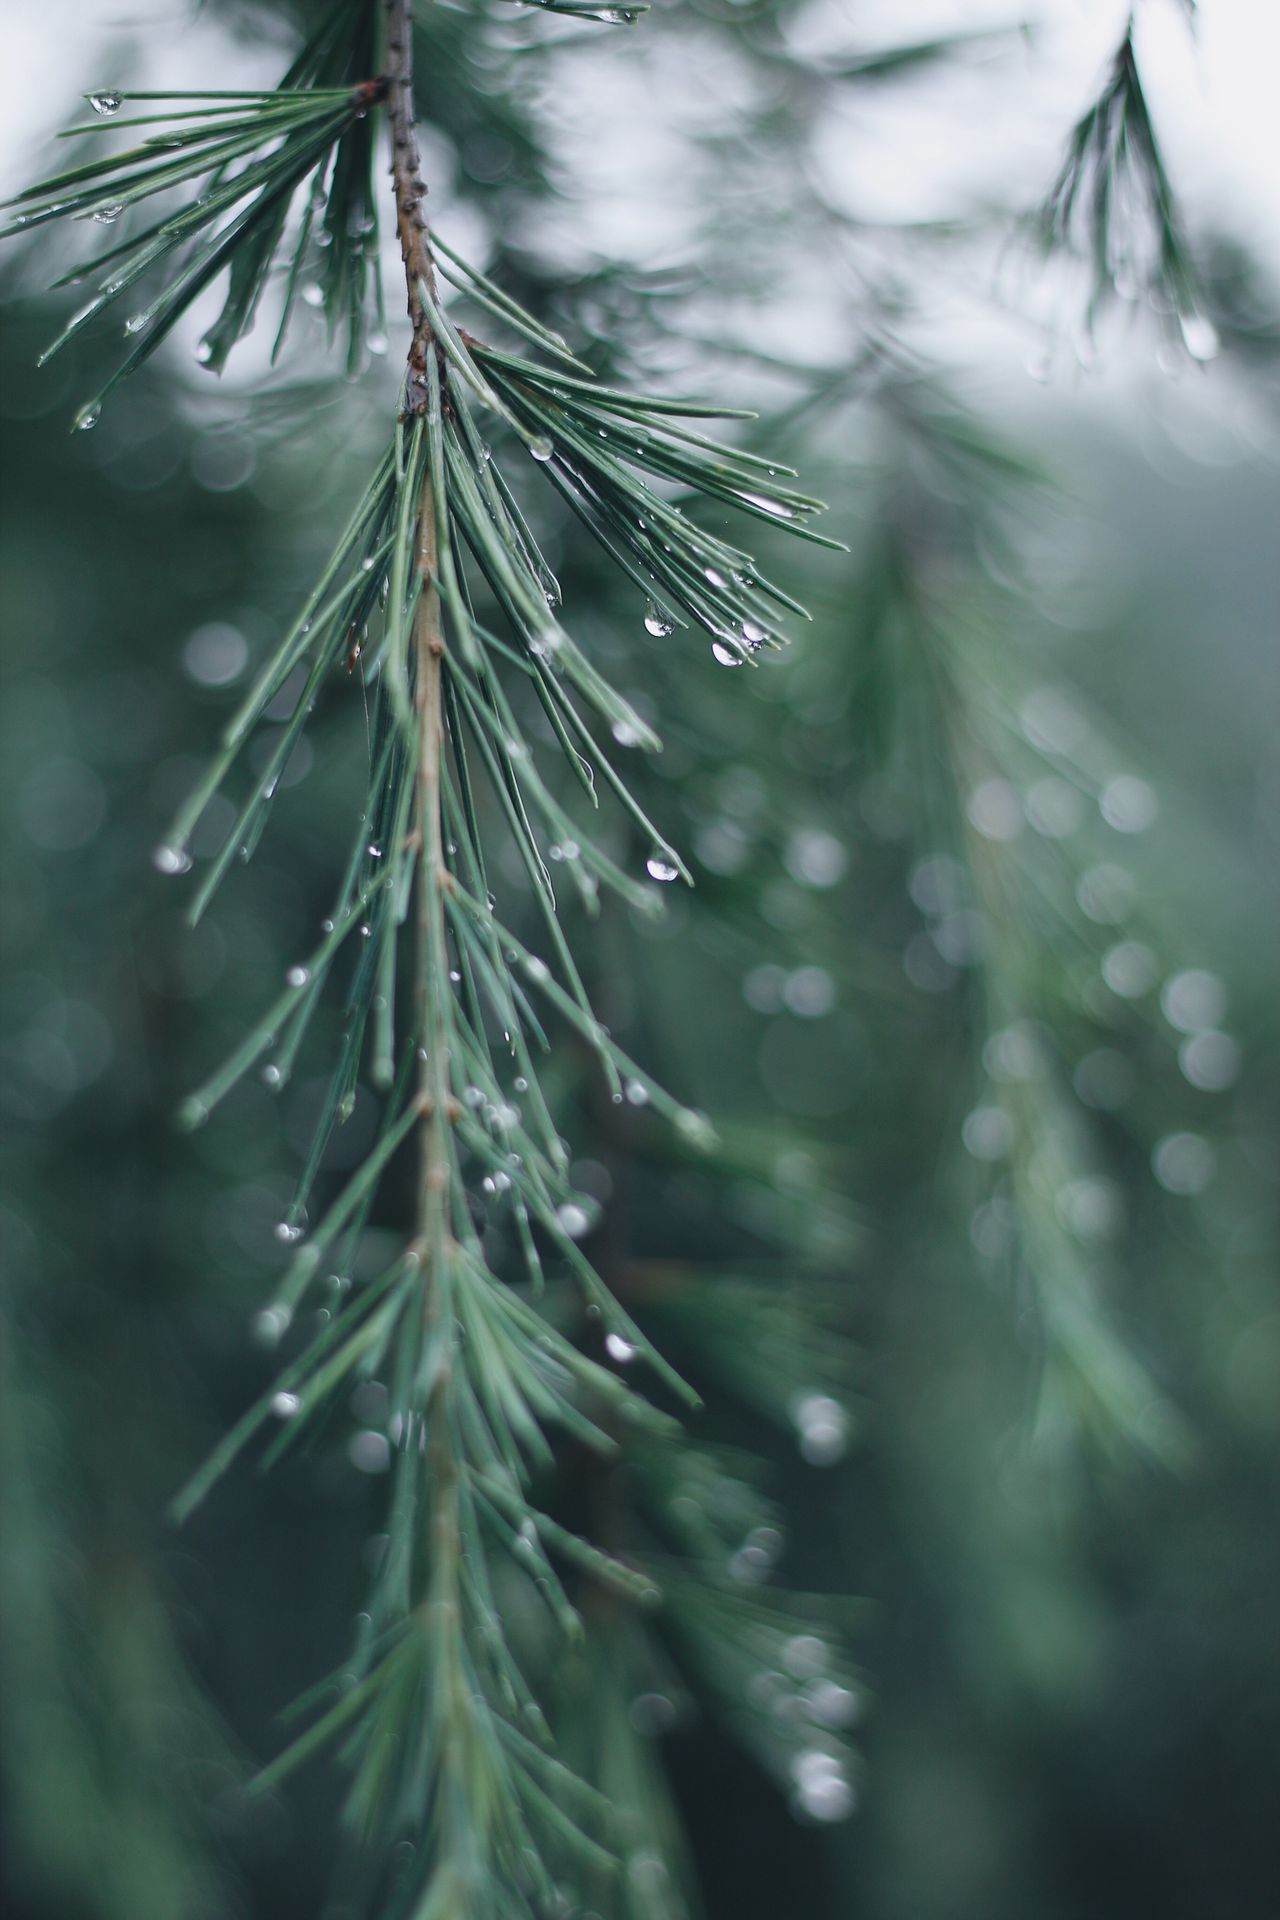 Rain Raindrops Rainy Days Drop Nature Growth Green Color Wet Focus On Foreground Beauty In Nature Close-up Needle - Plant Part Plant Day Leaf Freshness No People Outdoors RainDrop Tree Branch Water Needle Pine EyeEmNewHere